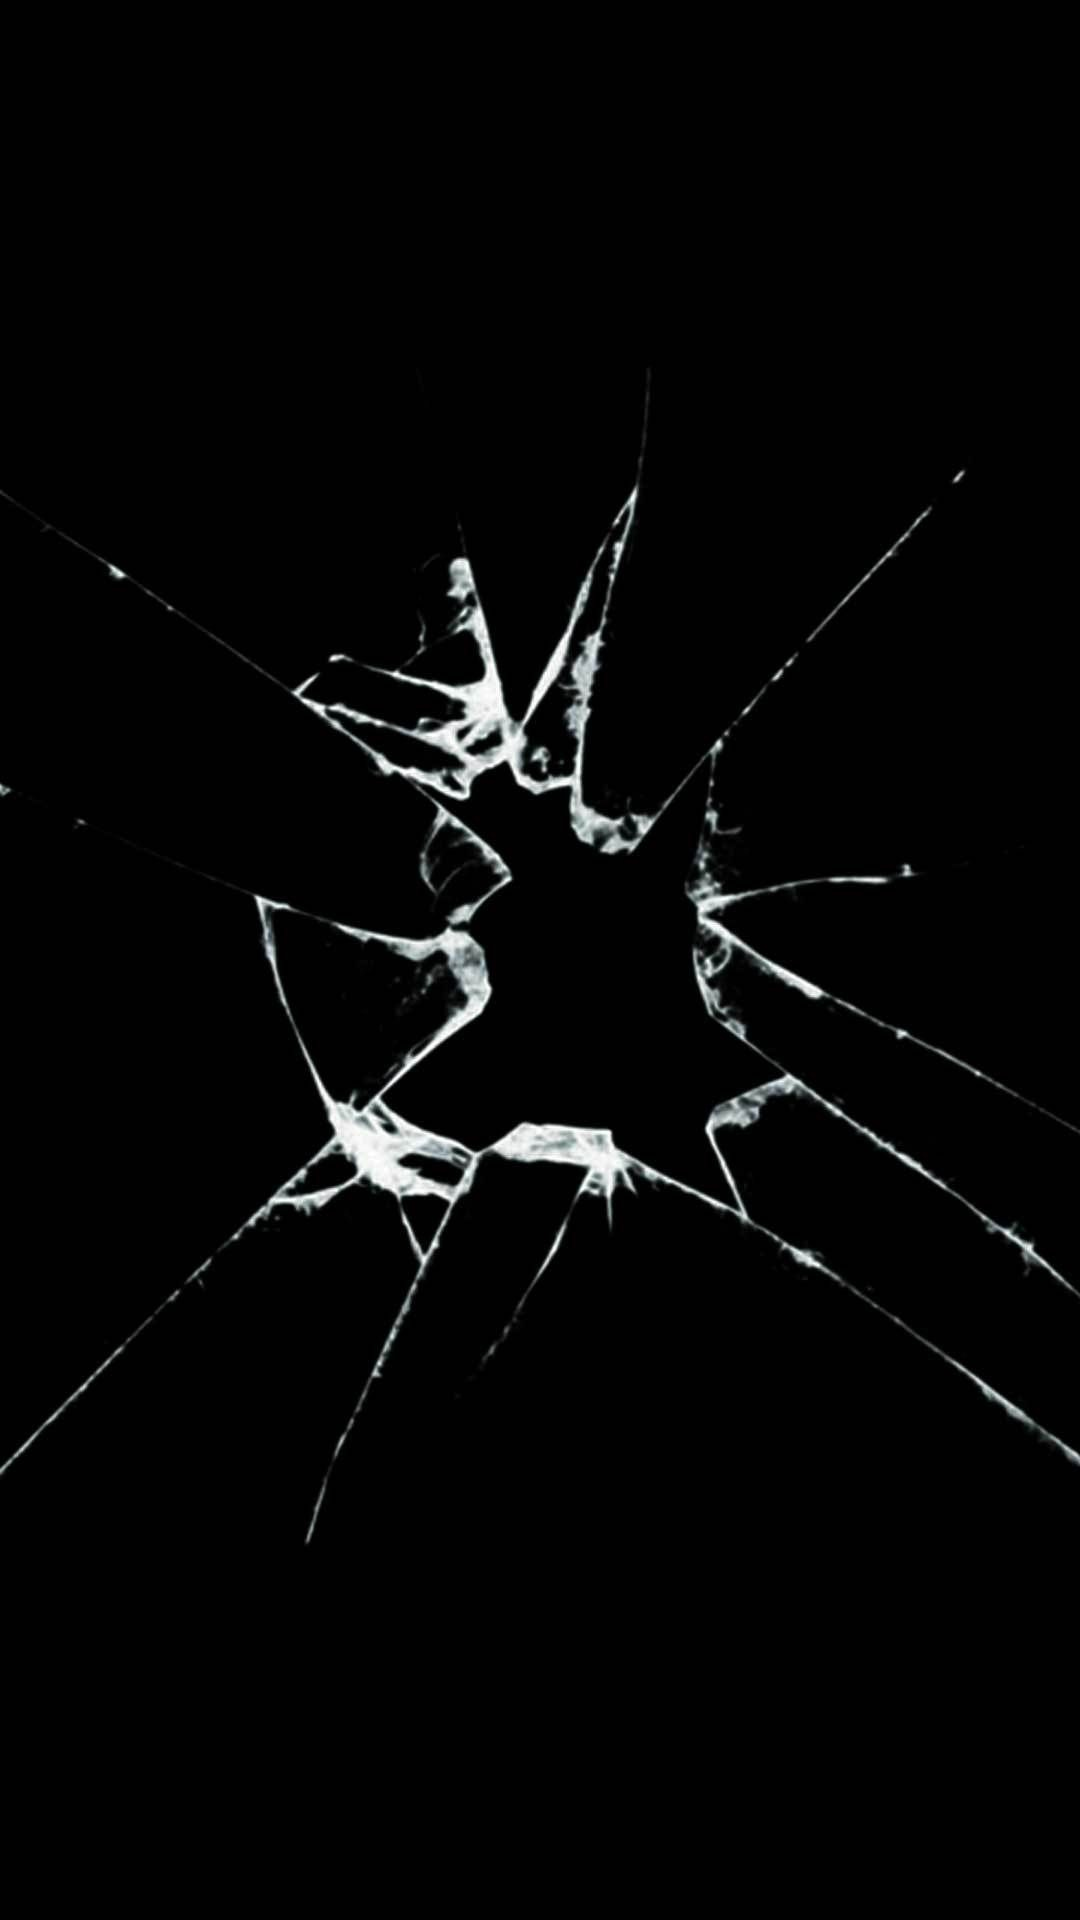 Cracked Phone Screen Wallpaper Hd 2020 Live Wallpaper Hd Broken Screen Wallpaper Cracked Phone Screen Screen Wallpaper Hd